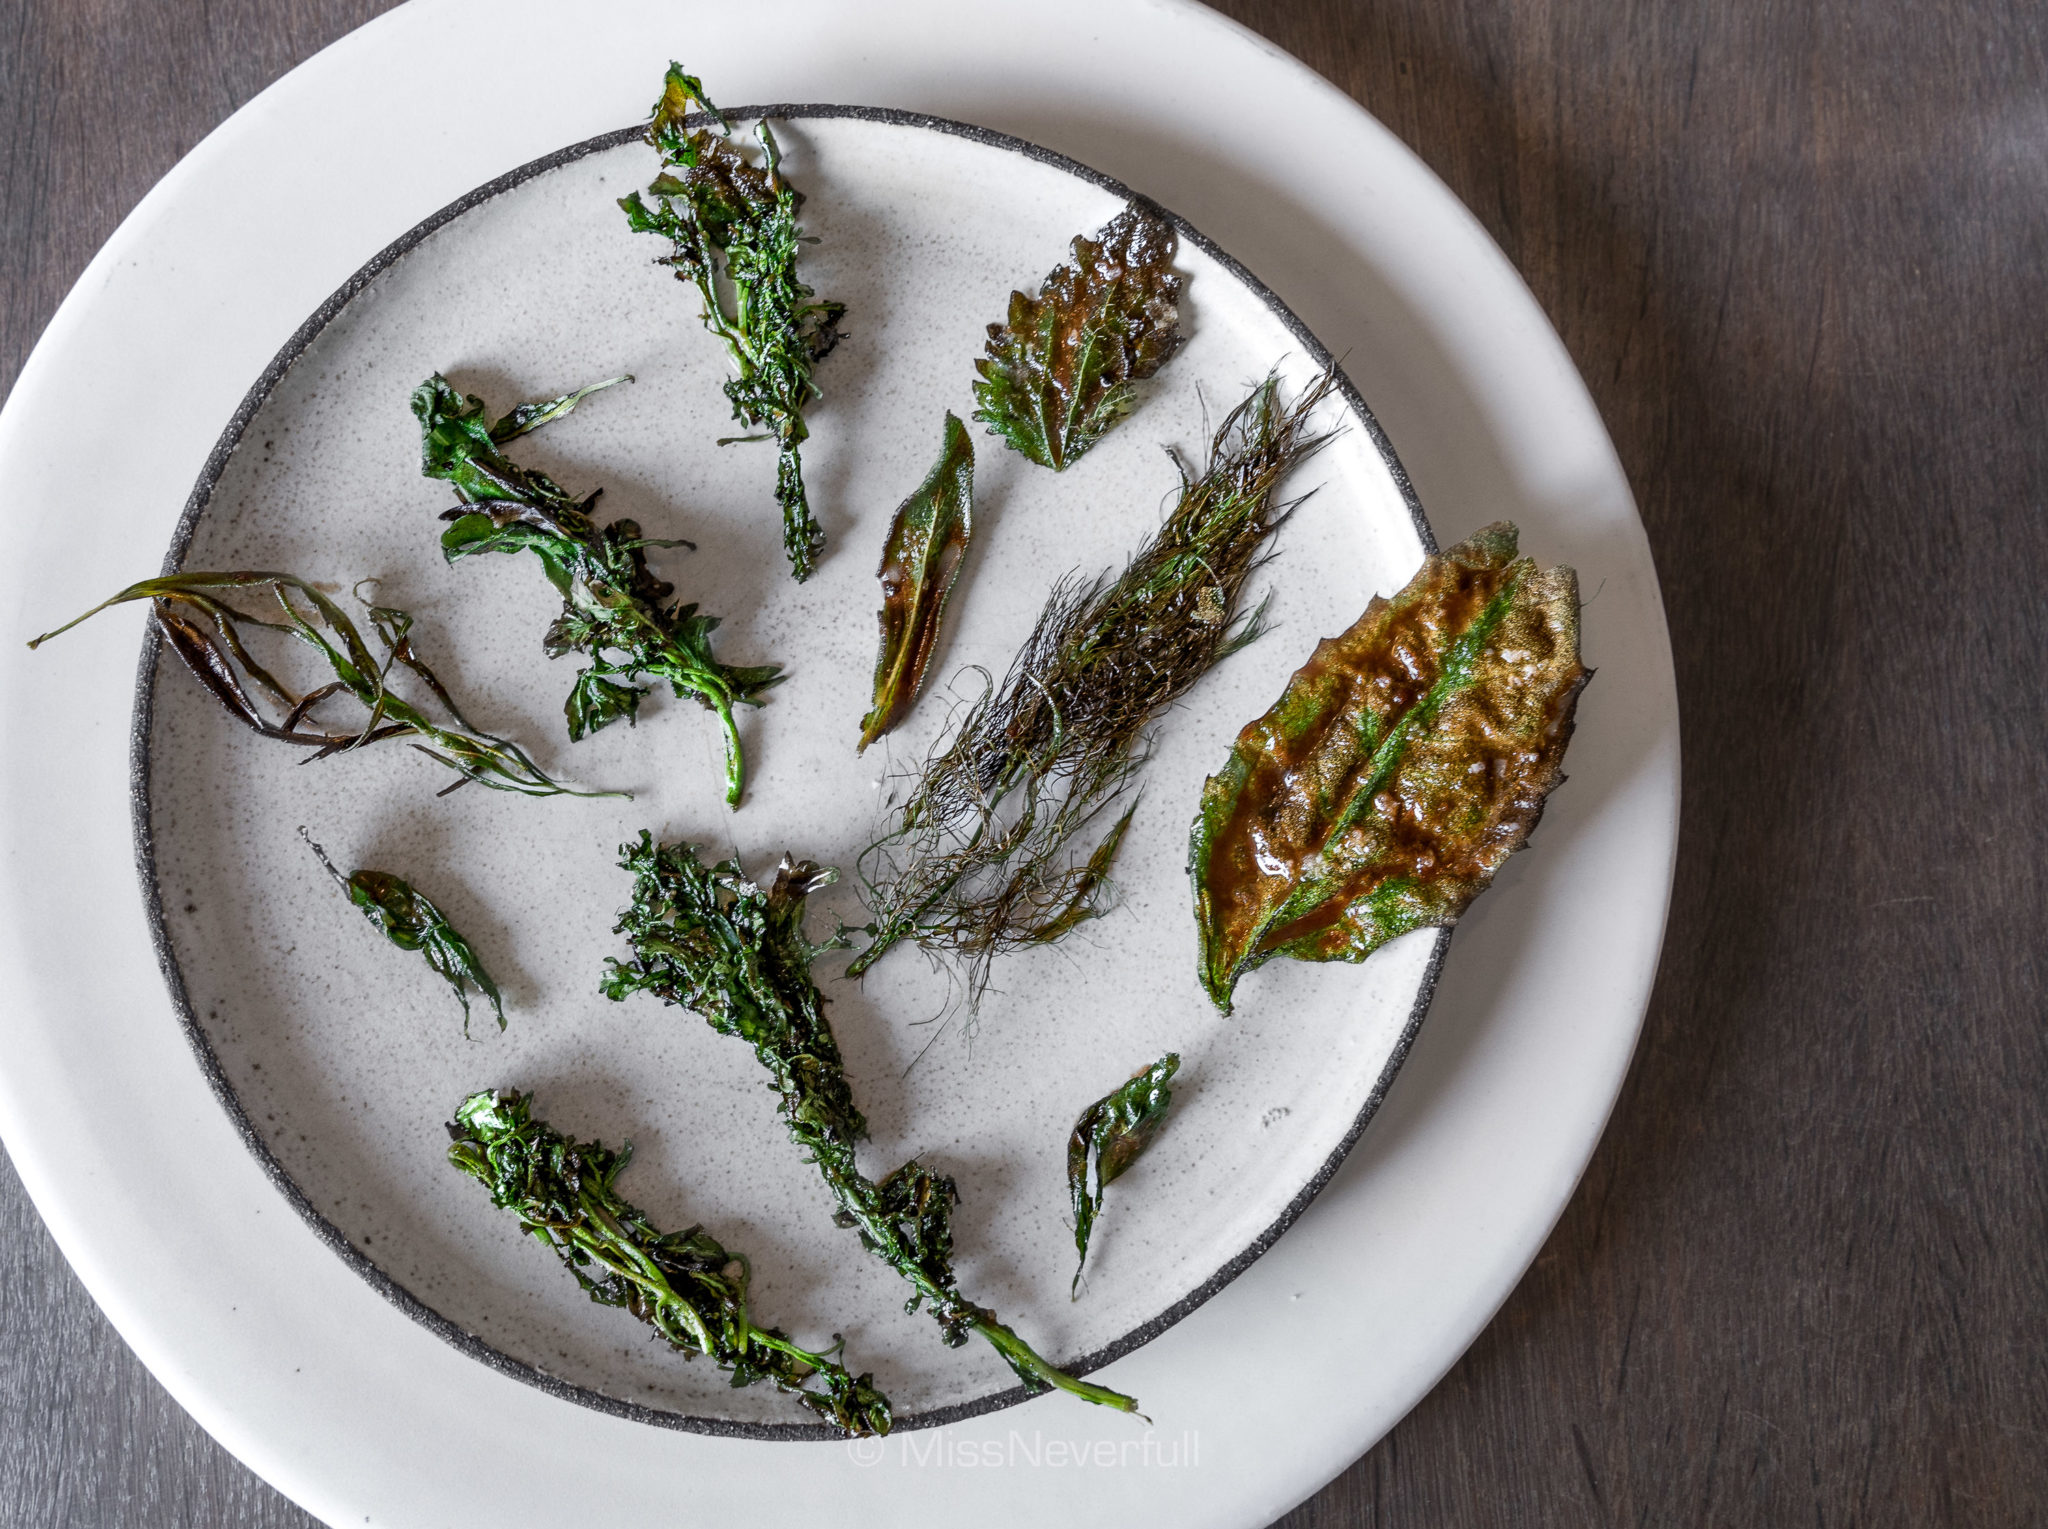 11. Charred greens with a scallop paste